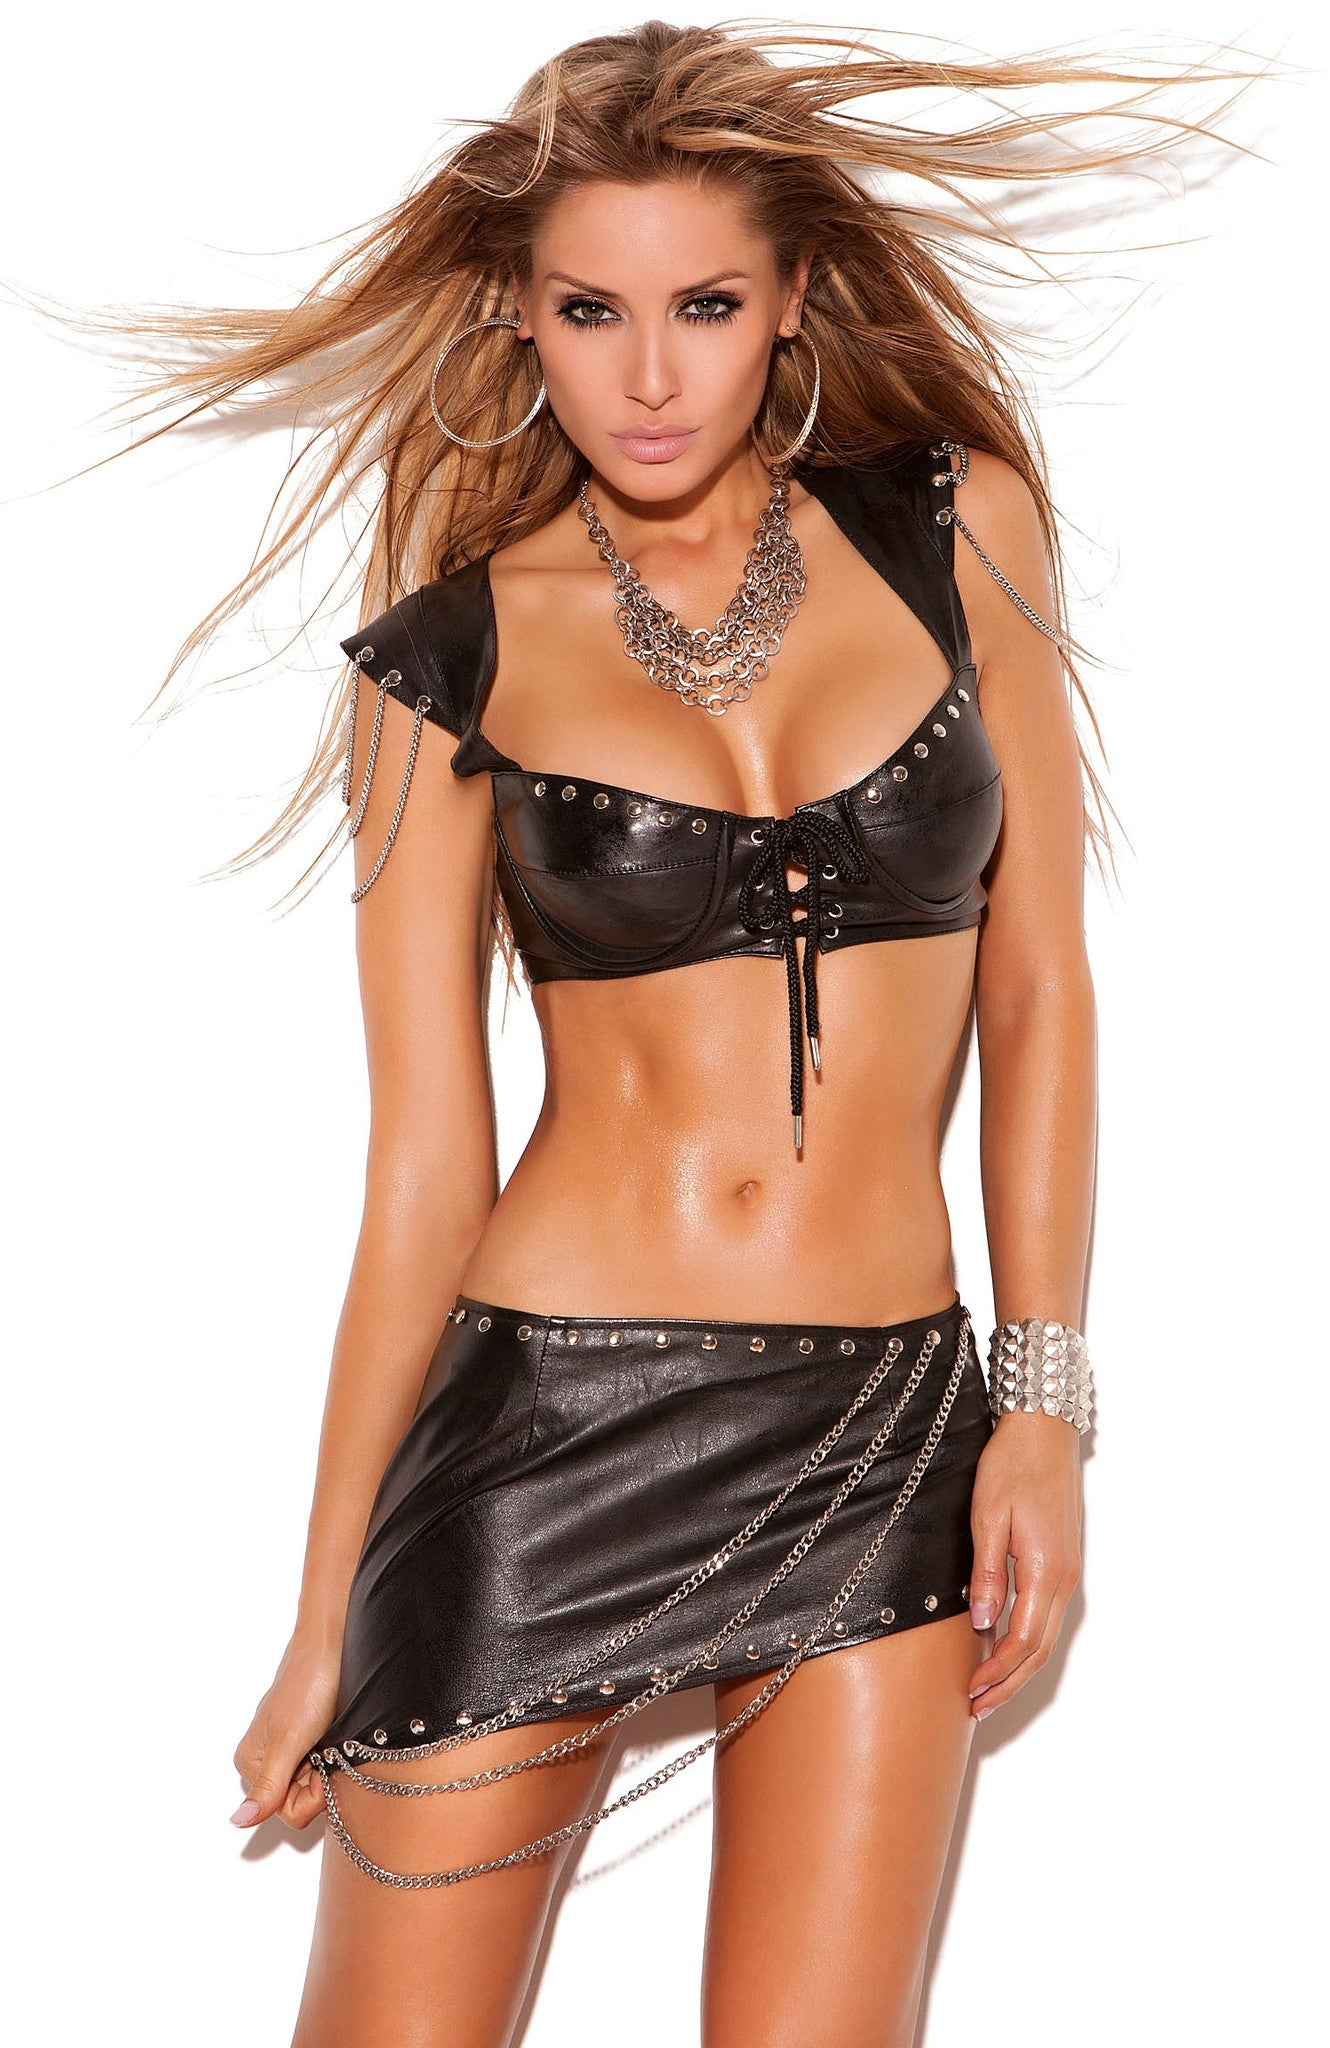 L6822 Leather mini skirt - Sexylingerieland  - 1